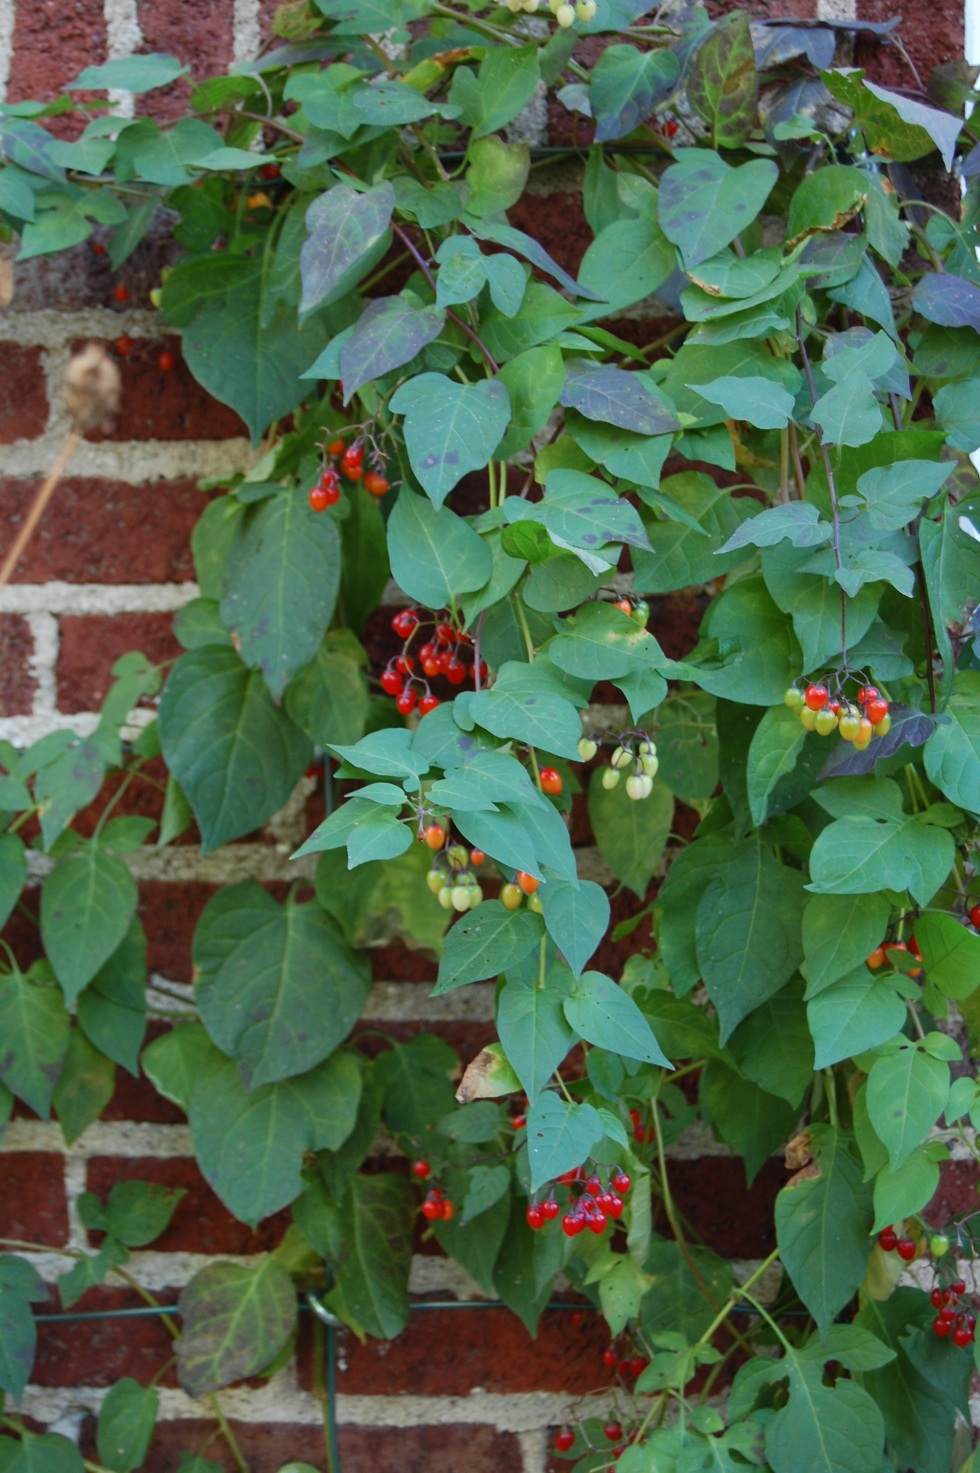 Deadly Nightshade as an ornamental vine for the garden